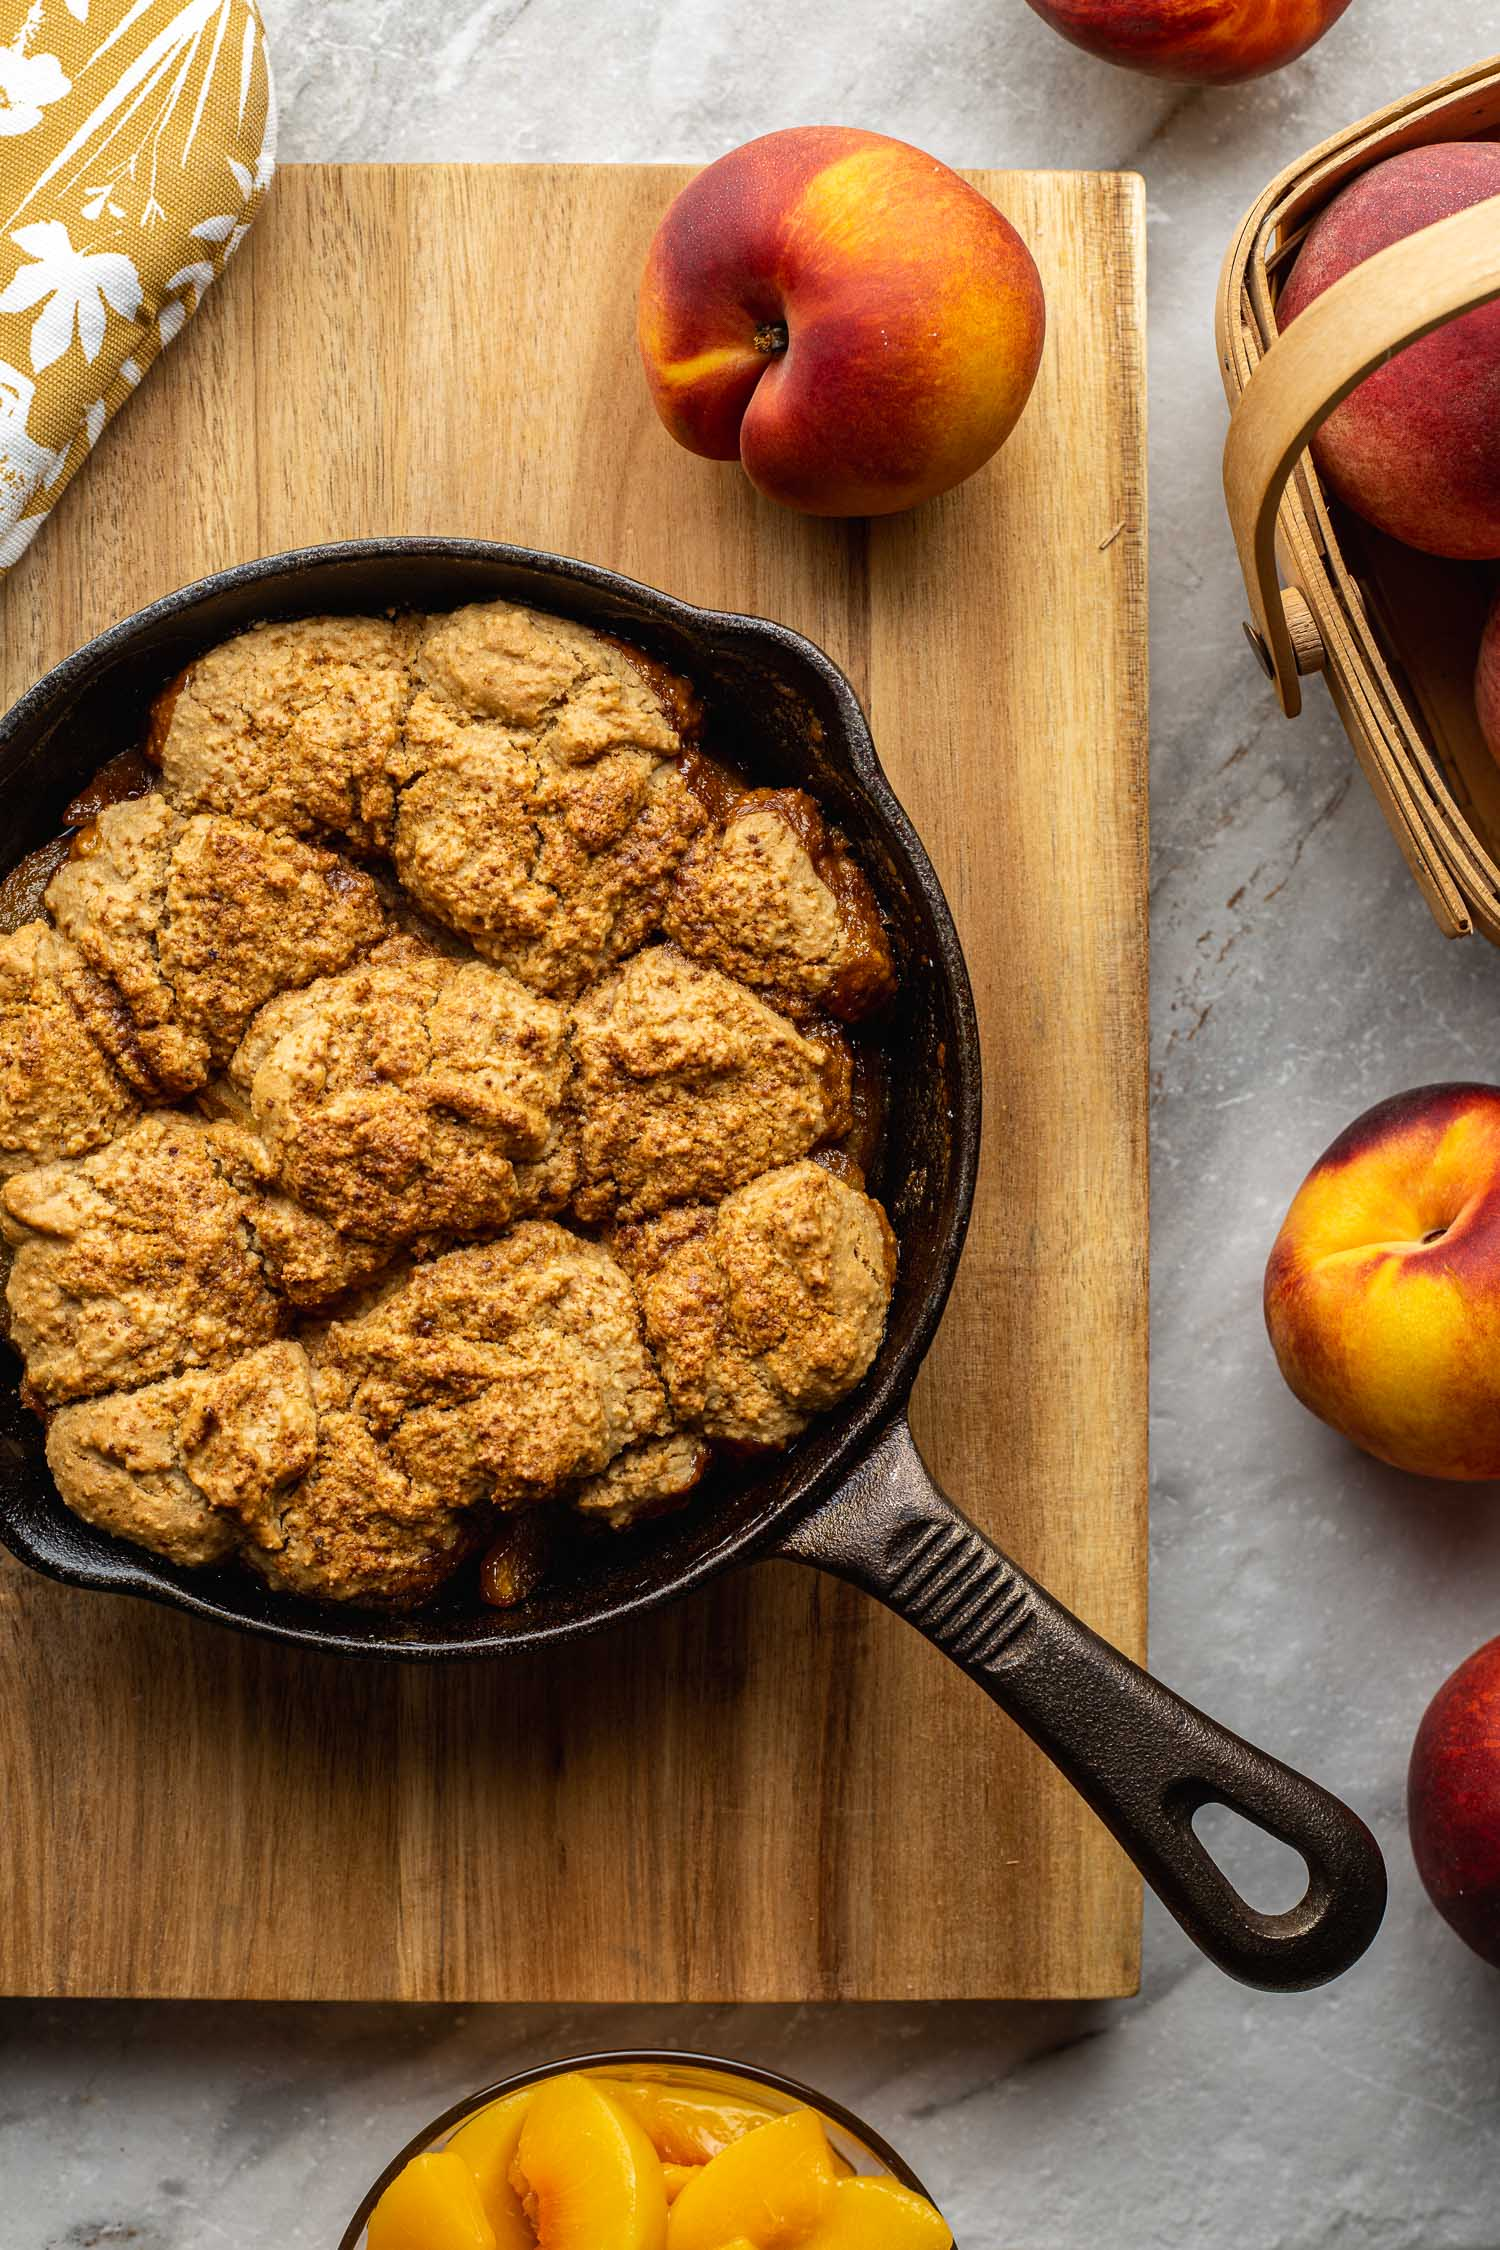 on a wood cutting board sits a cast iron skillet of biscuit topped gluten free peach cobbler with a basket and a whole ripe peach sitting nearby